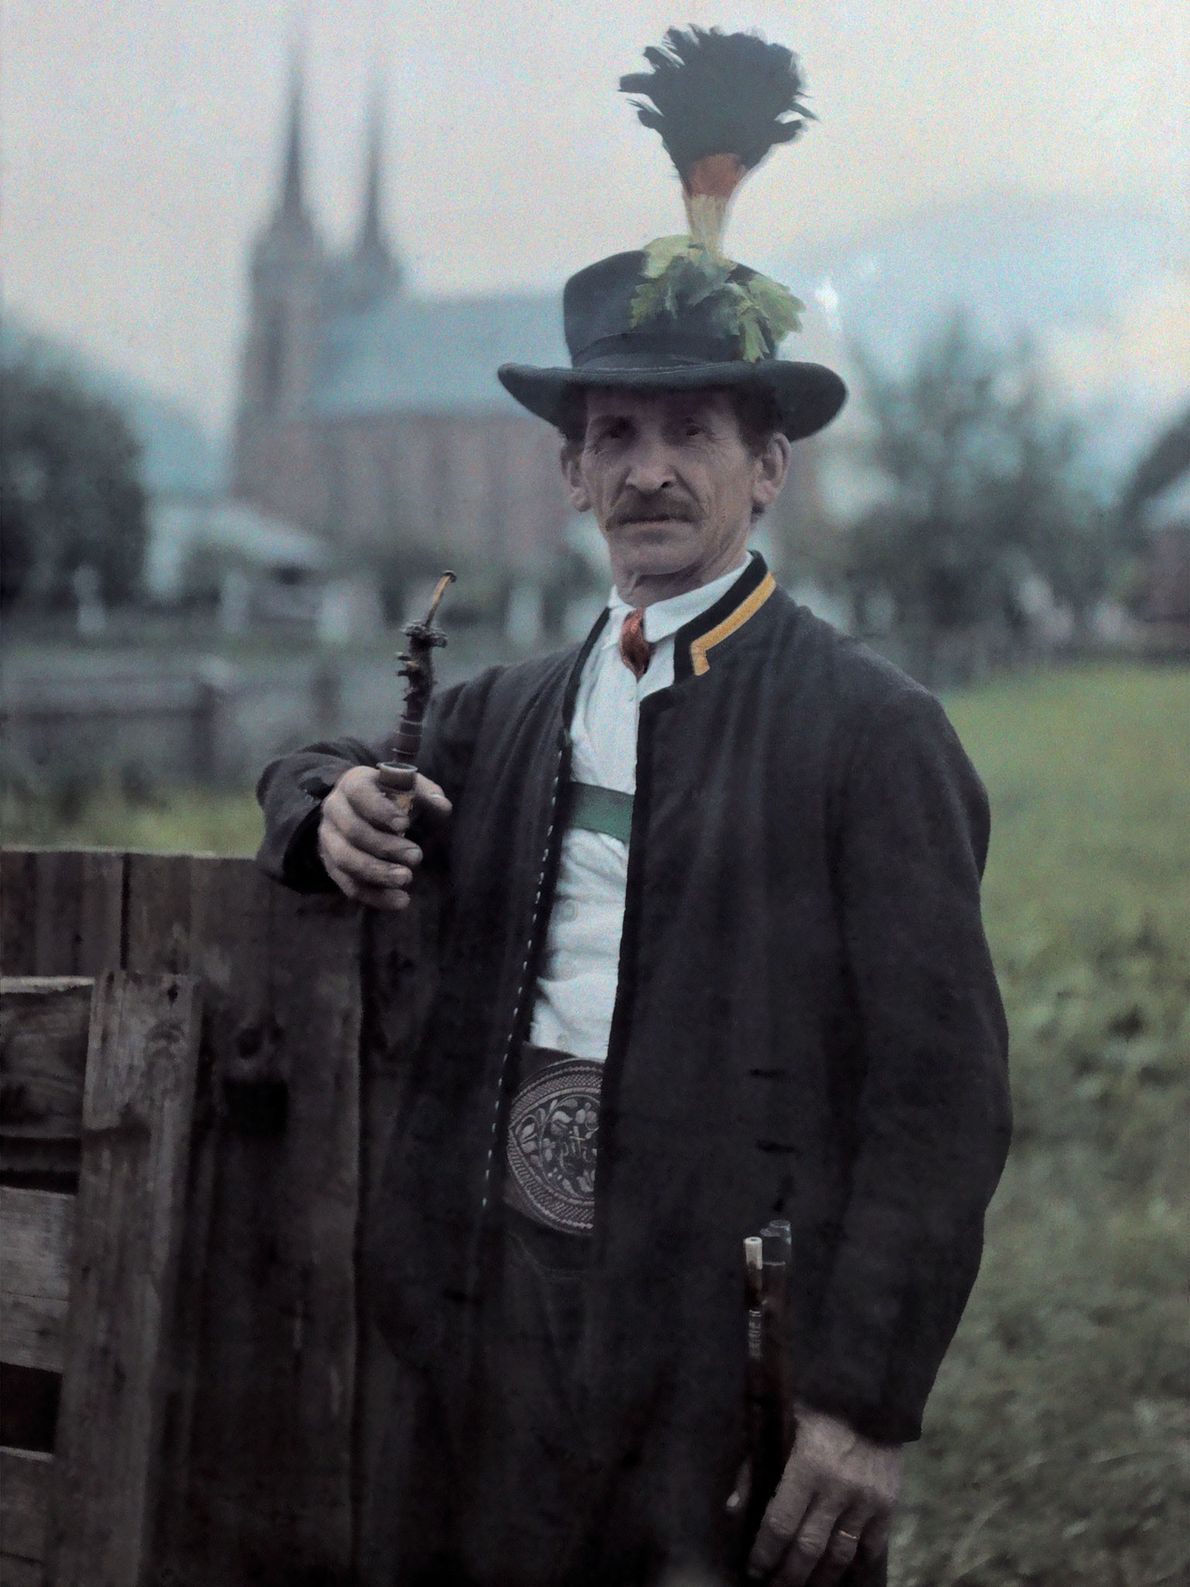 A man in a guard uniform and hat poses with his pipe in Austria.